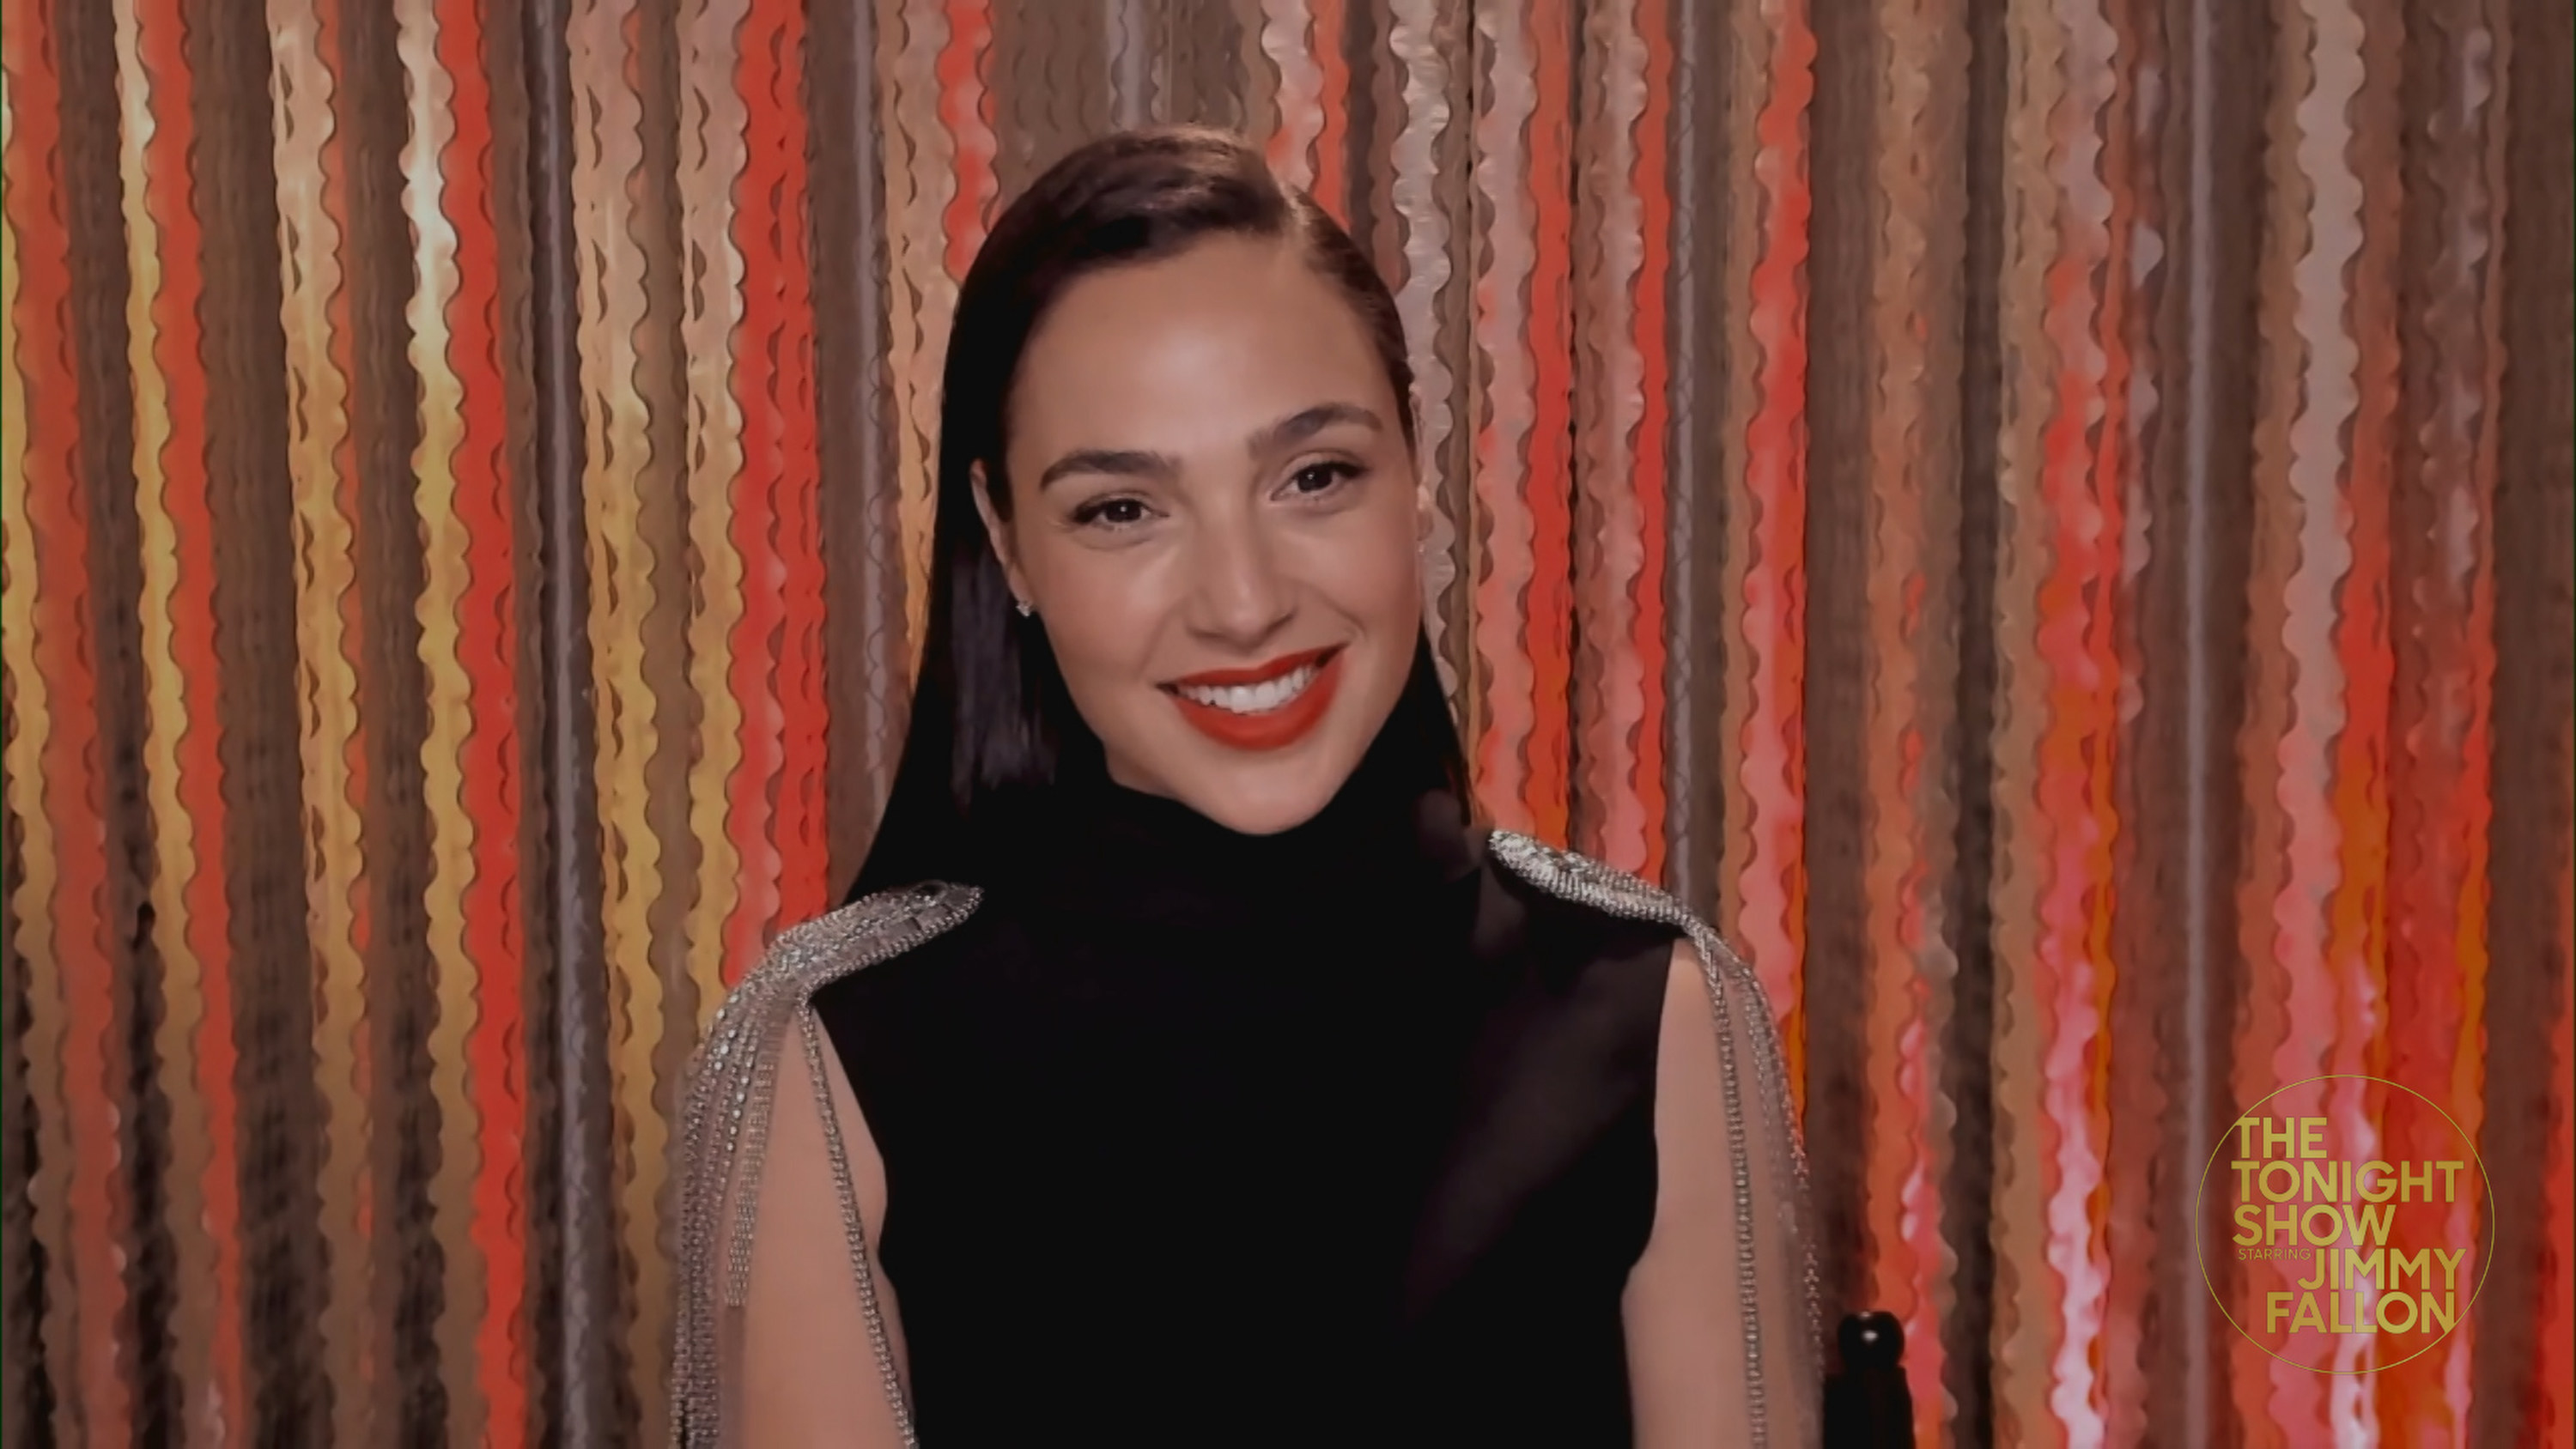 Gal Gadot smiles in front of a red-laced curtain